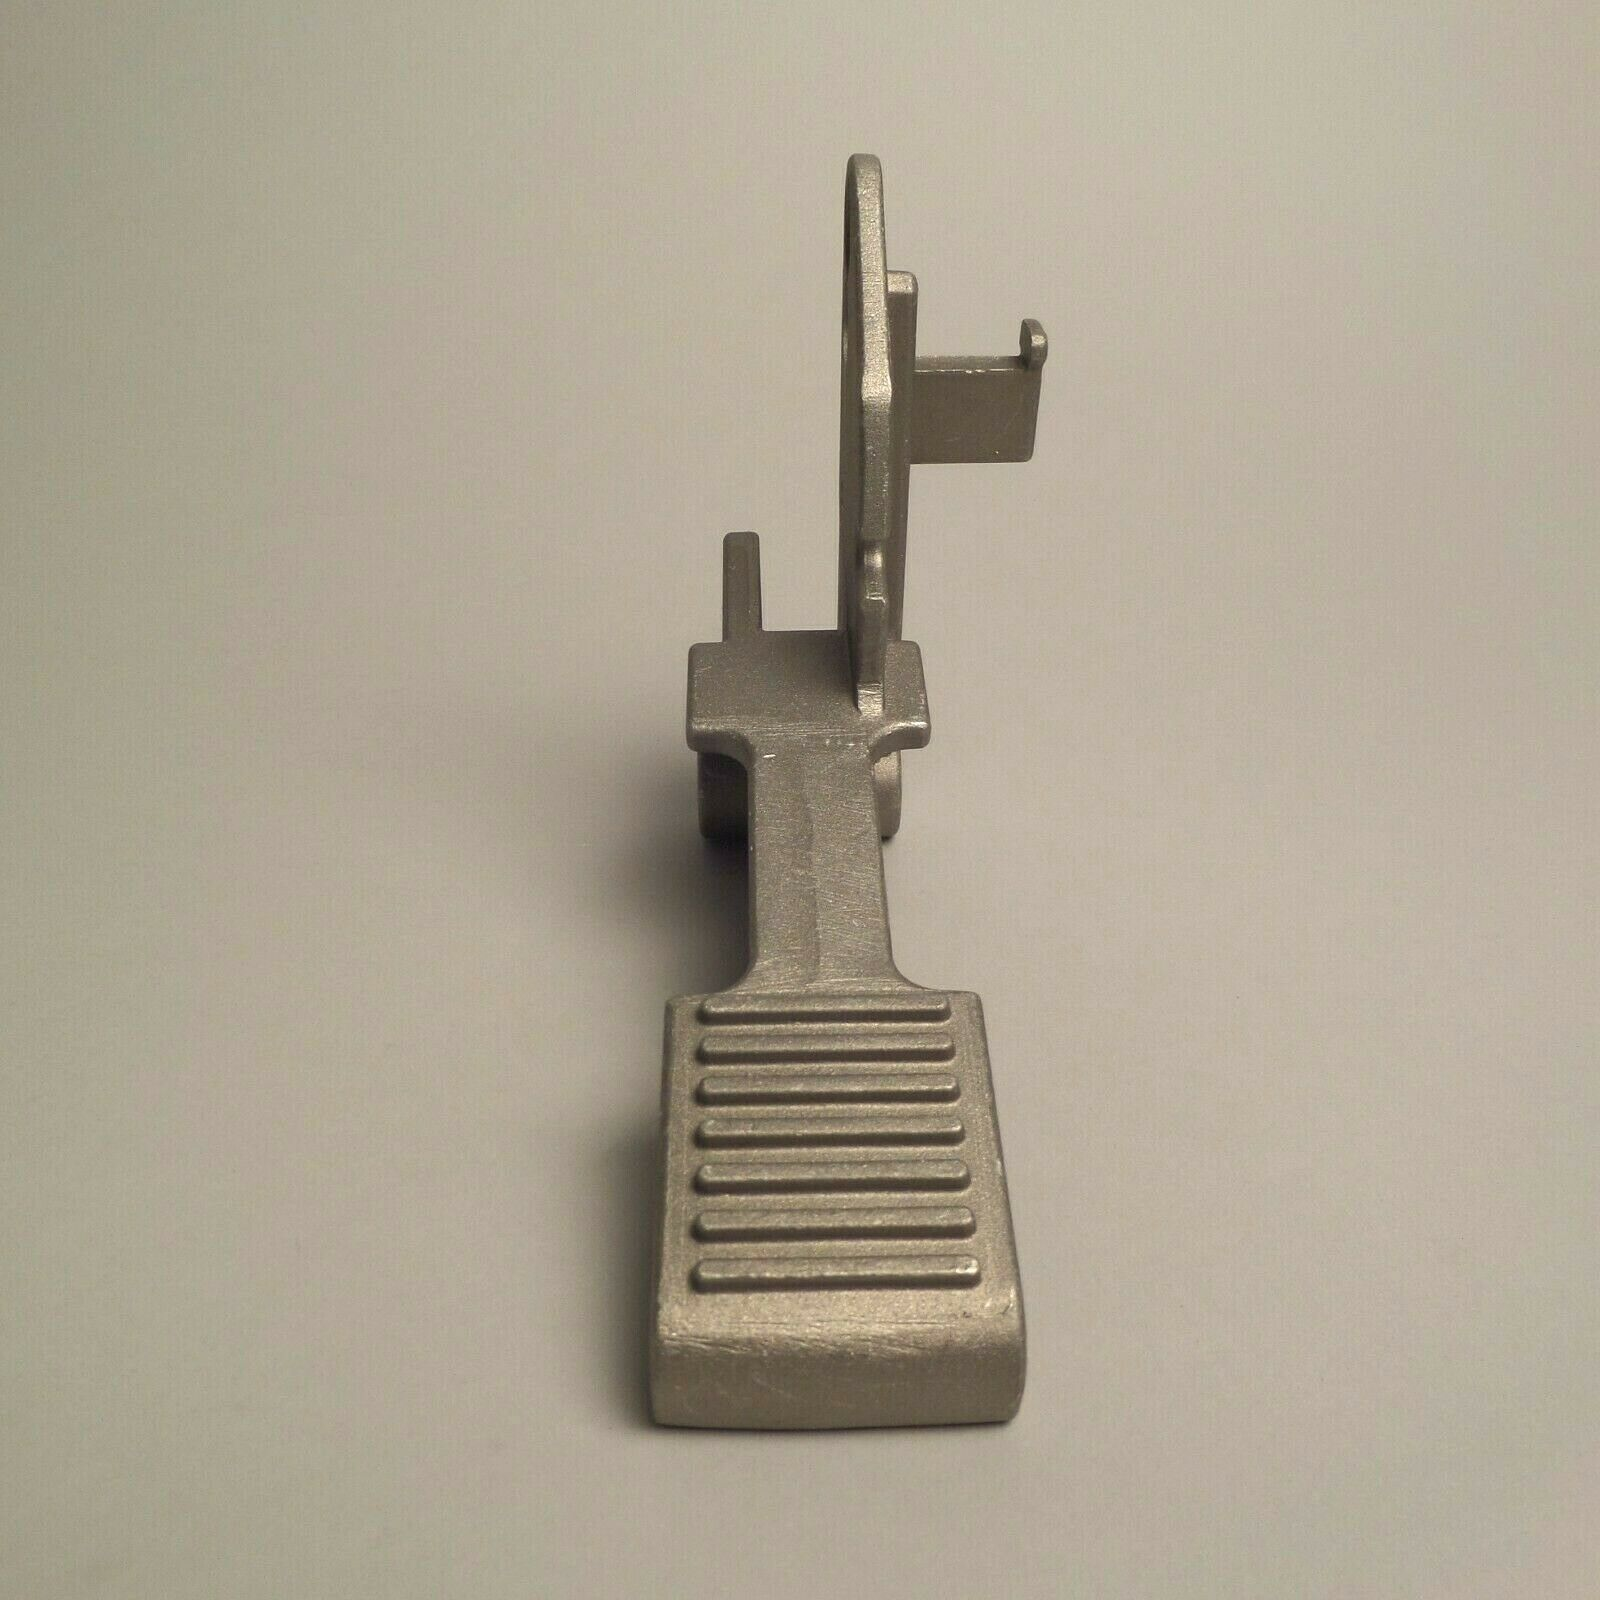 Replacement Foot Pedal For Coats®* Tire Changer Machines